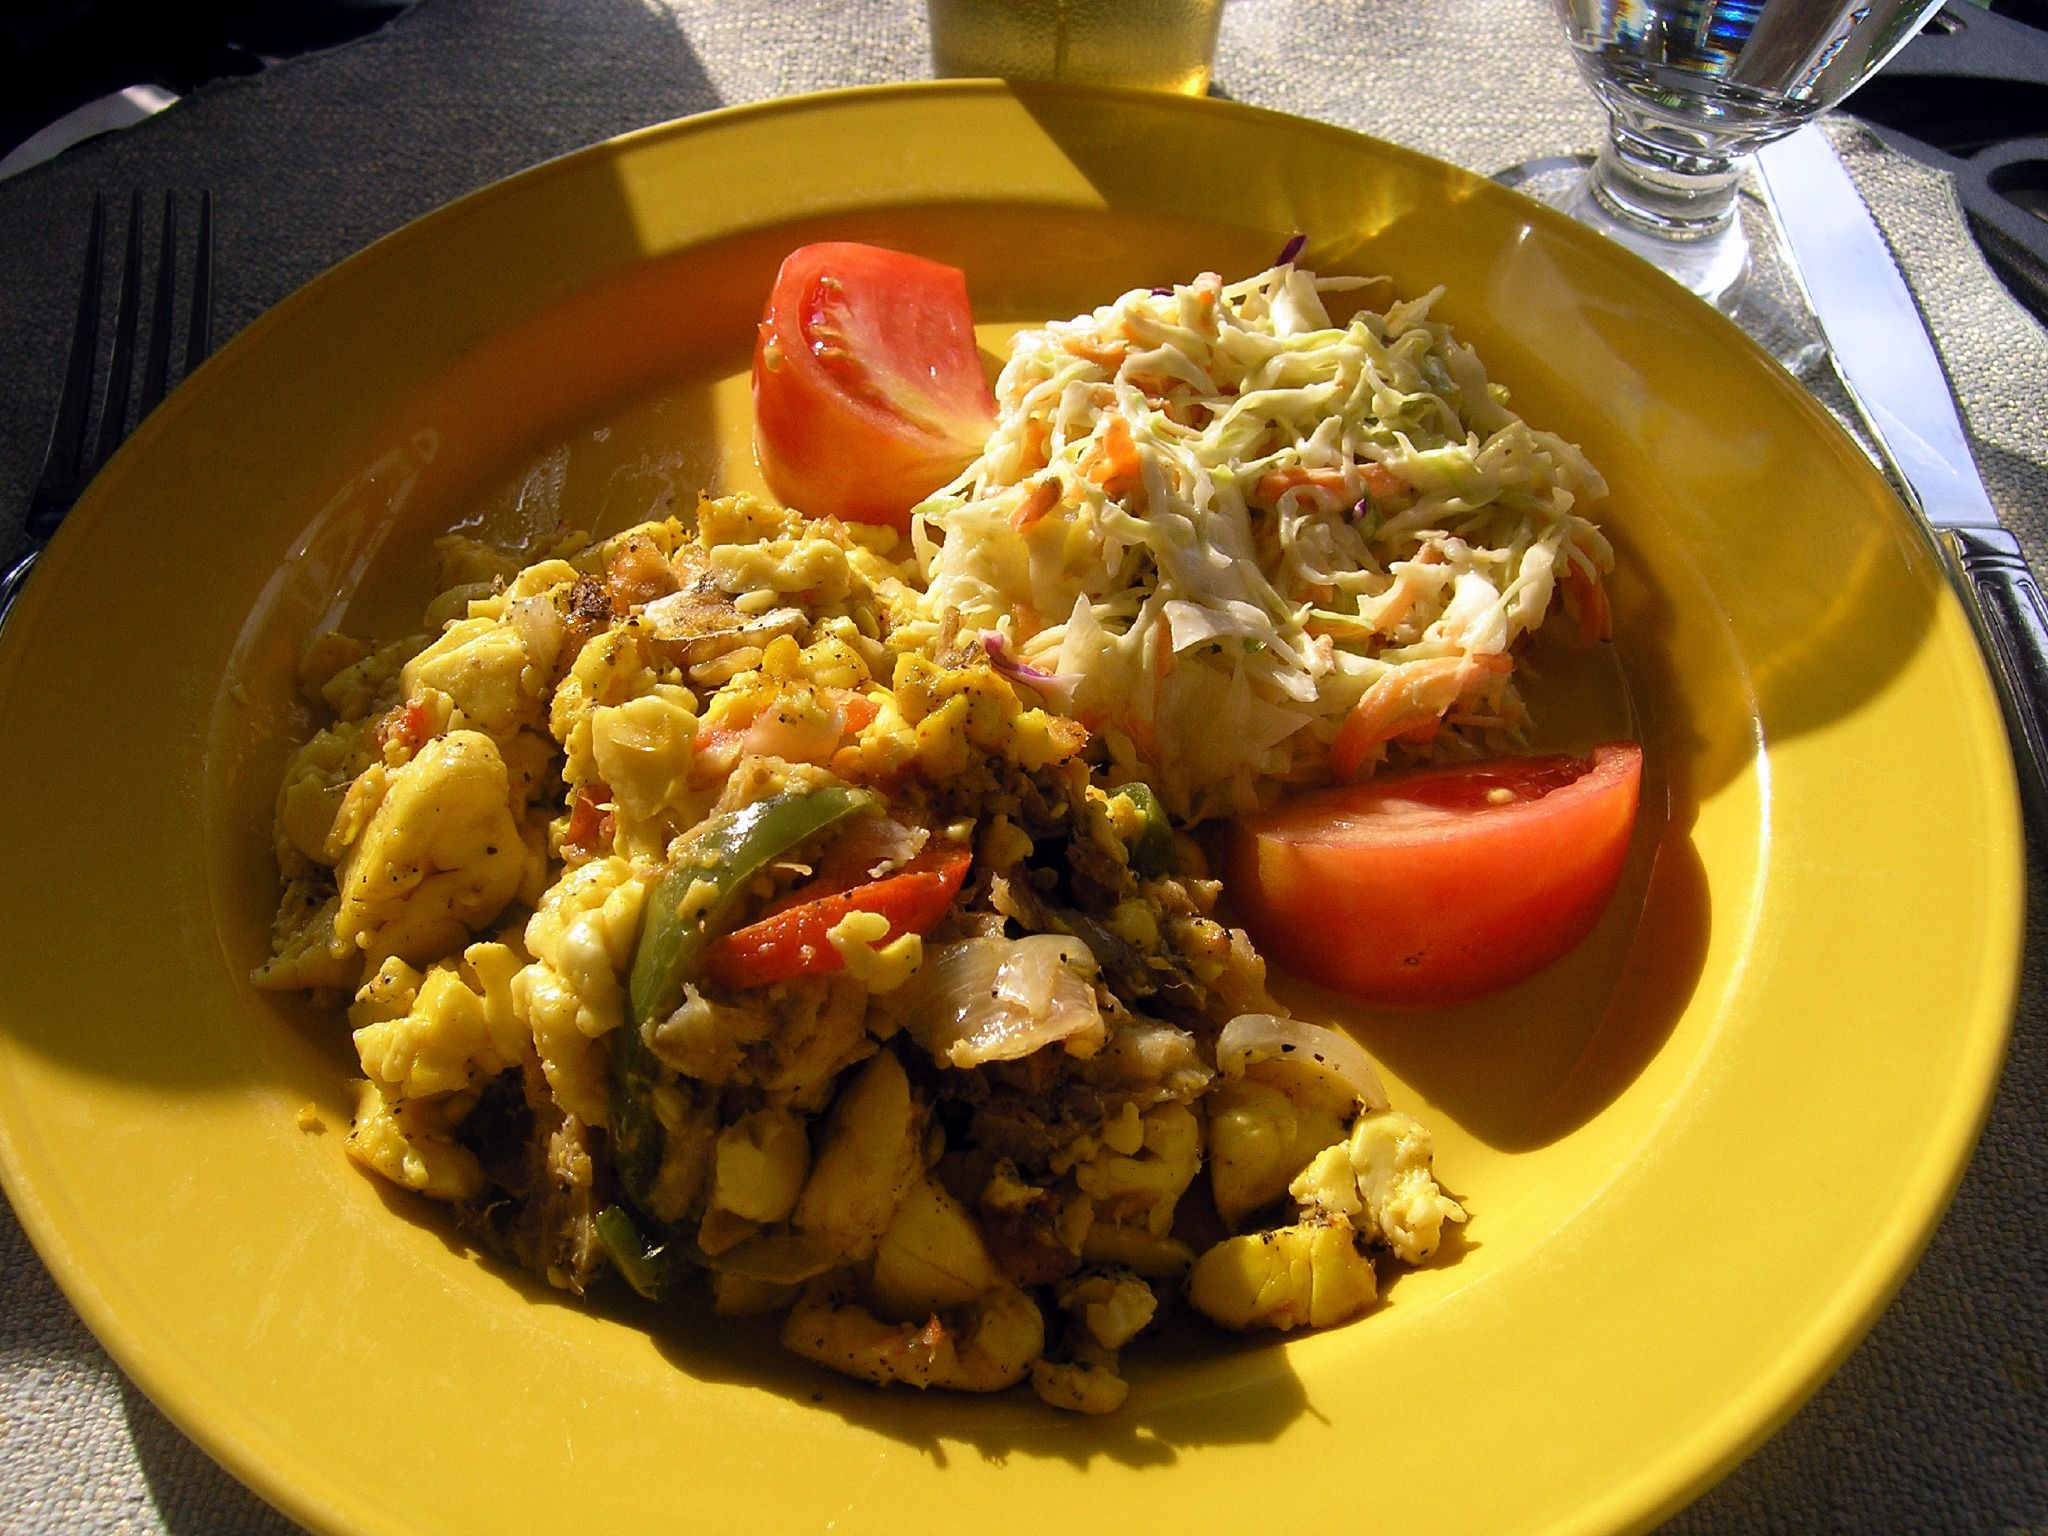 Ackee and codfish / Ackee and Saltfish, food in Jamaica, jamaican food, jamaican cuisine, jamaican dishes, jamaican drinks, jamaican appetizers, jamaican traditional food